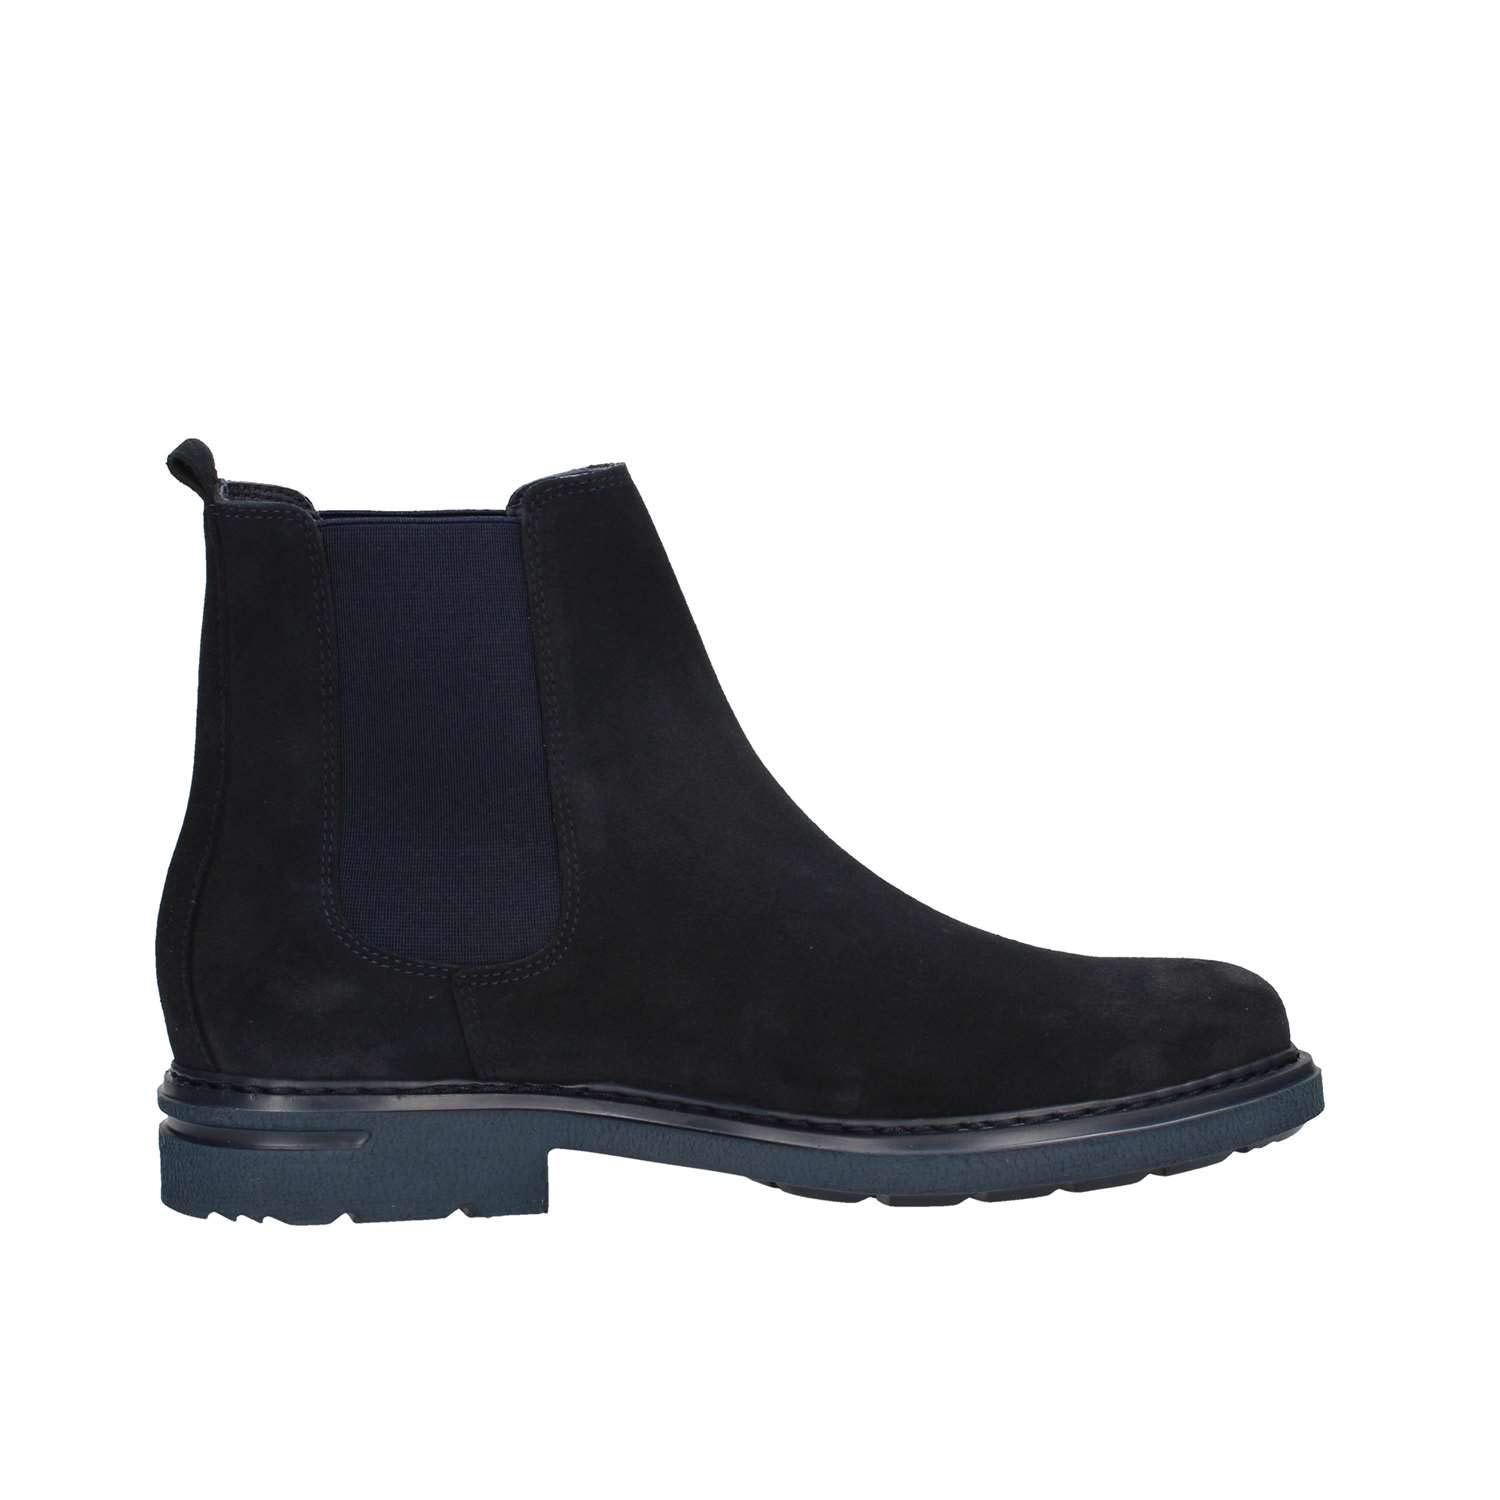 CALLAGHAN 16405 Beatles Shoes Ankle Boots Man Blue Suede